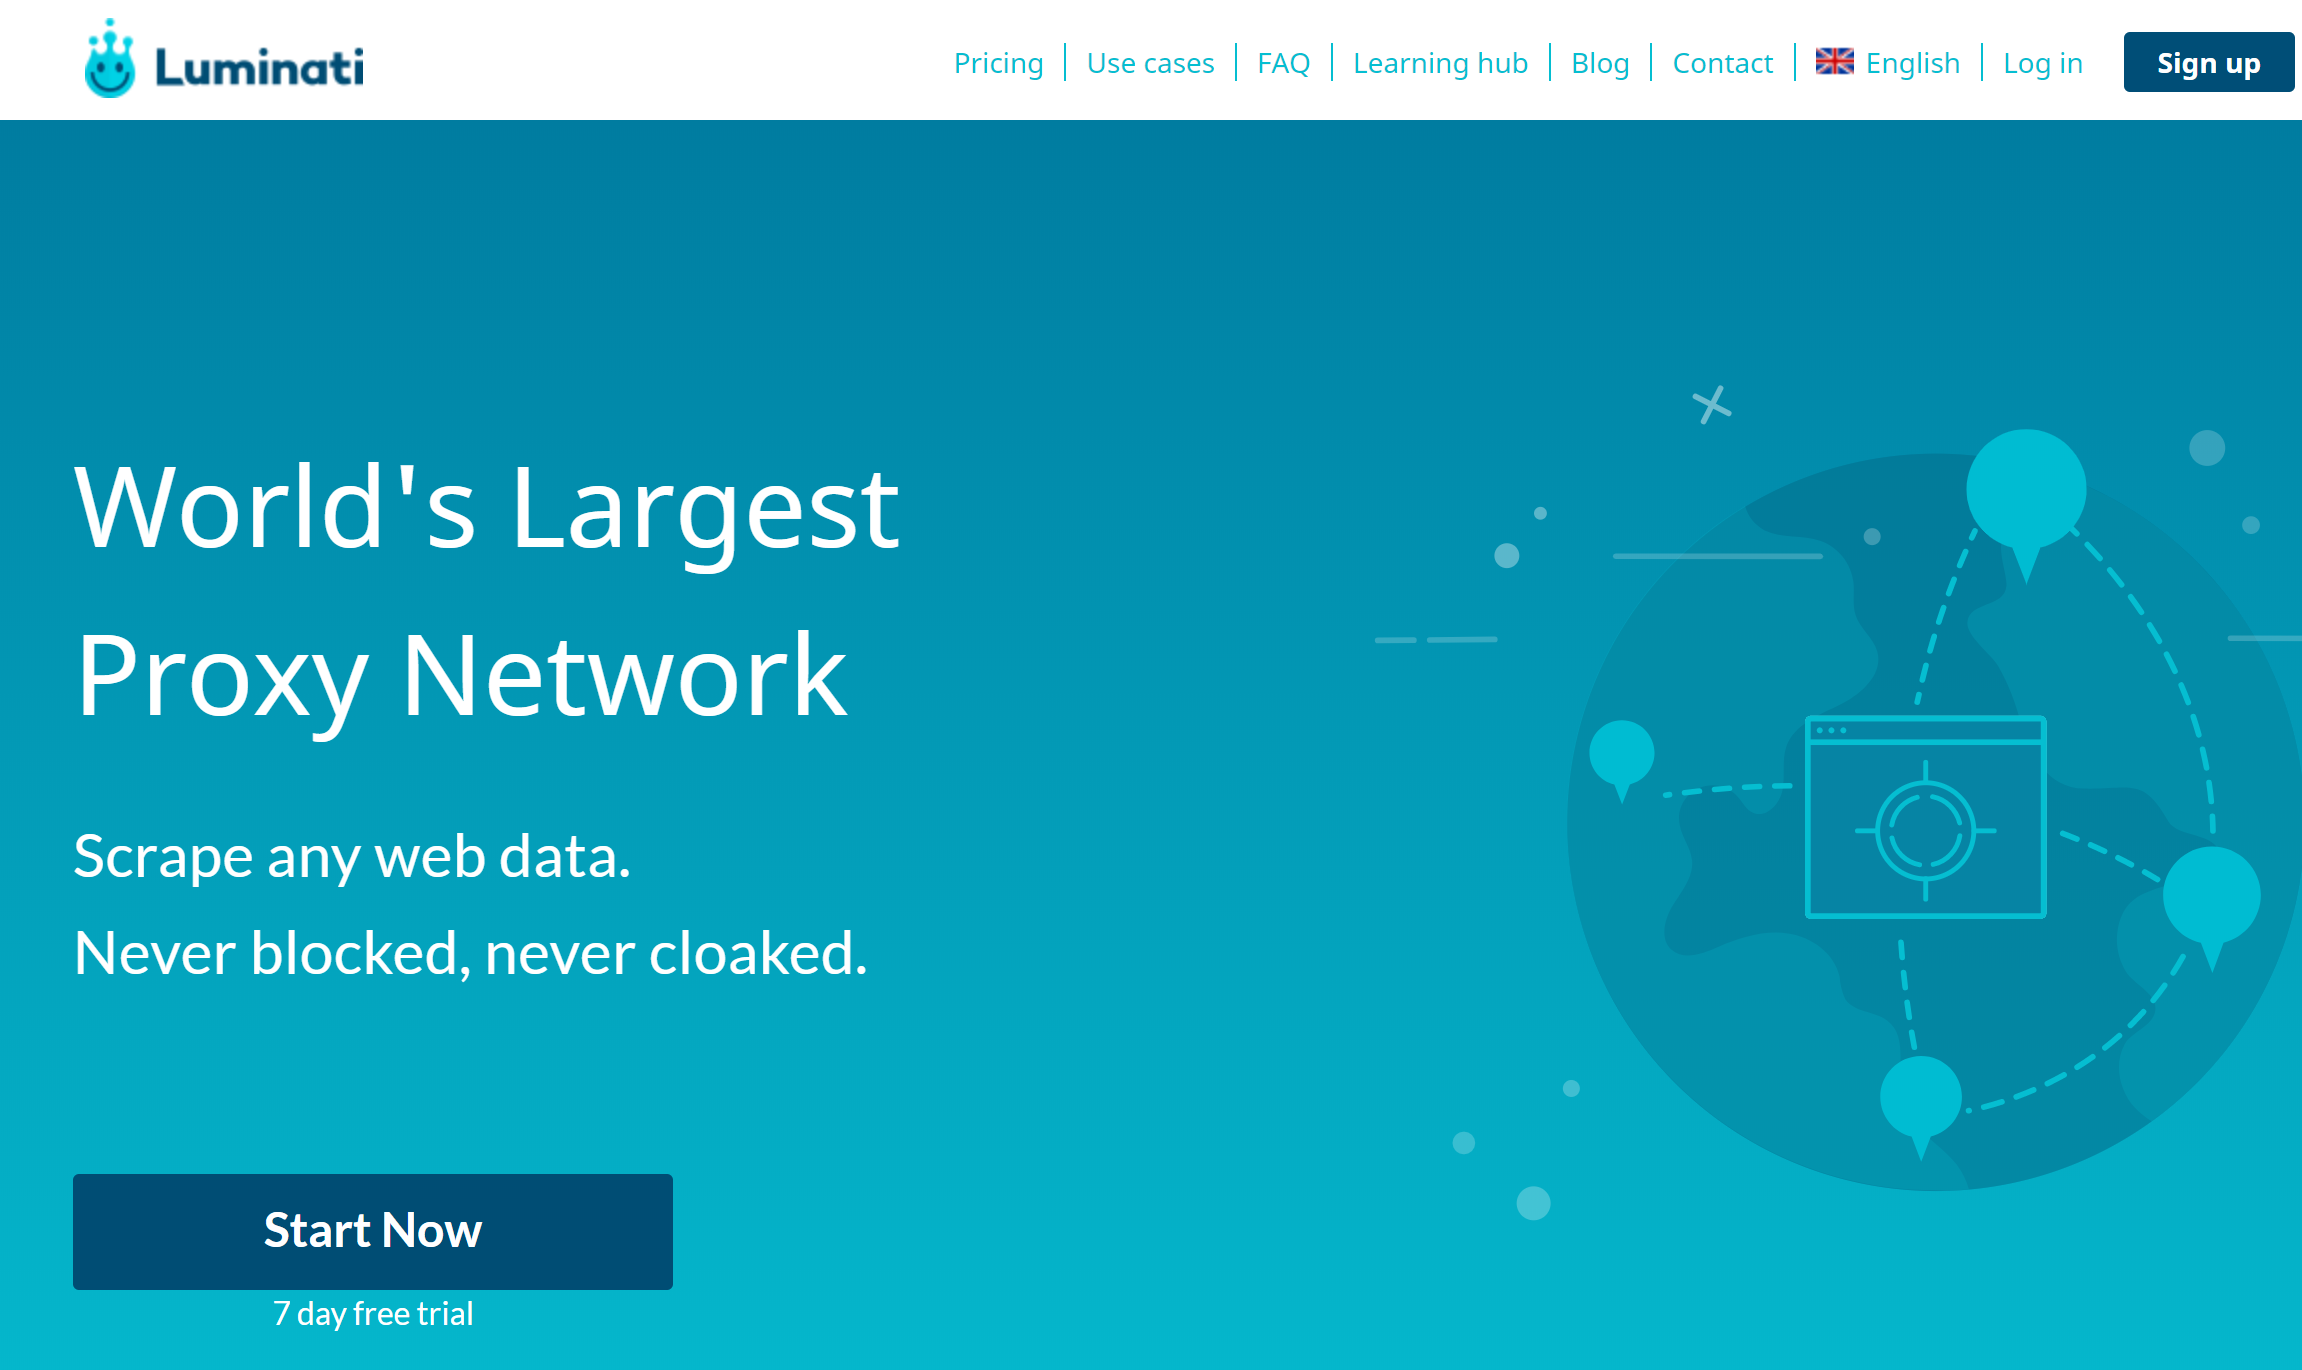 Luminati Proxy network- Best P2P Proxy